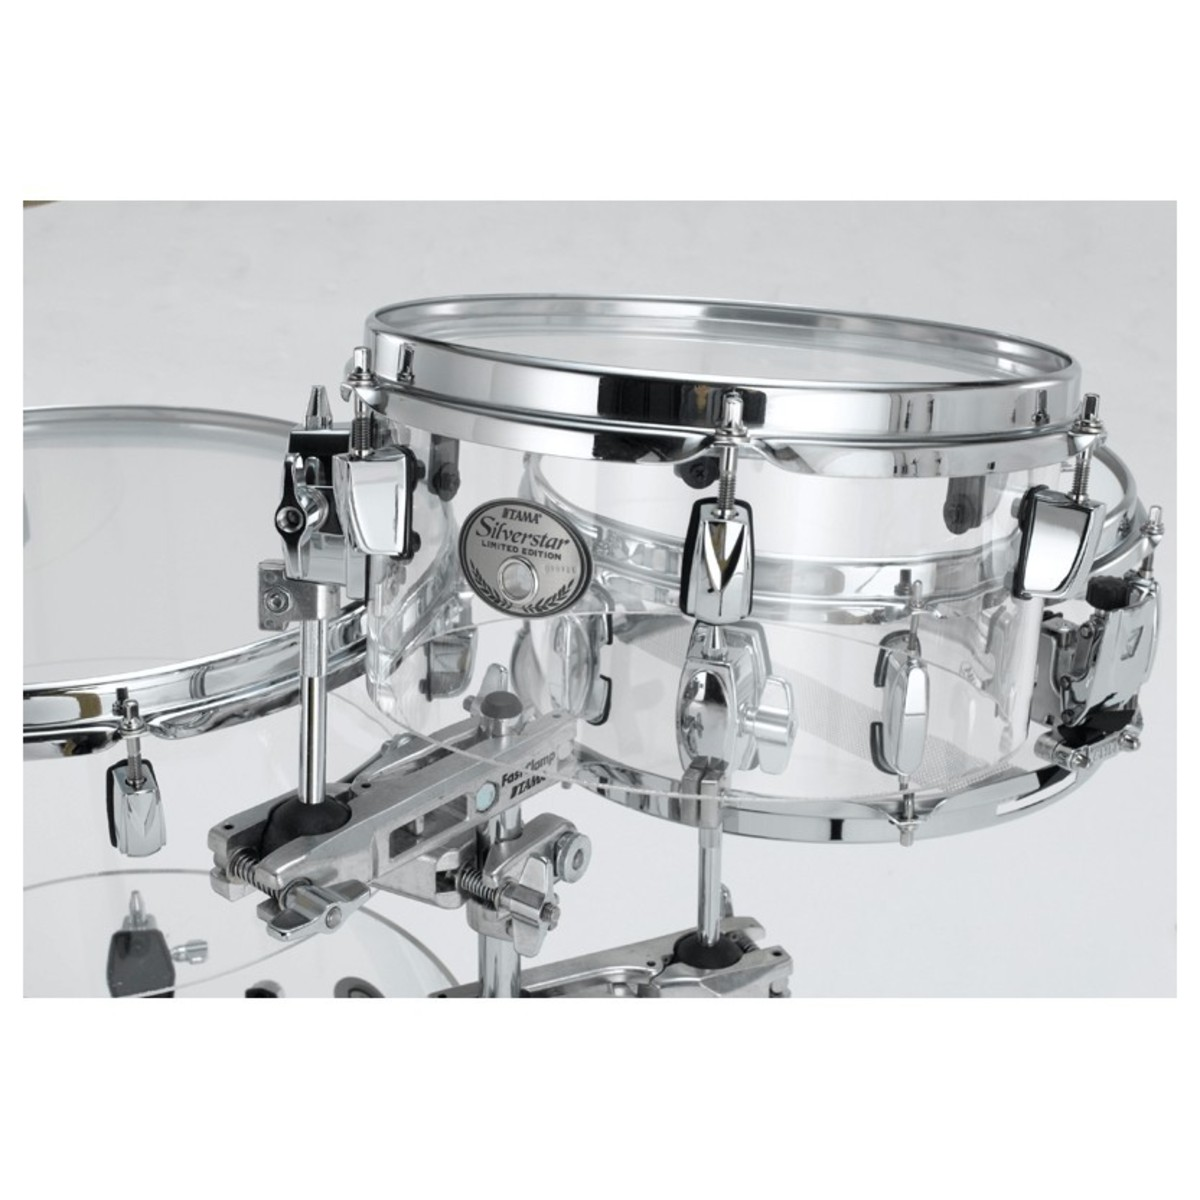 tama silverstar mirage cocktail 16 39 39 4pc kit crystal ice at gear4music. Black Bedroom Furniture Sets. Home Design Ideas